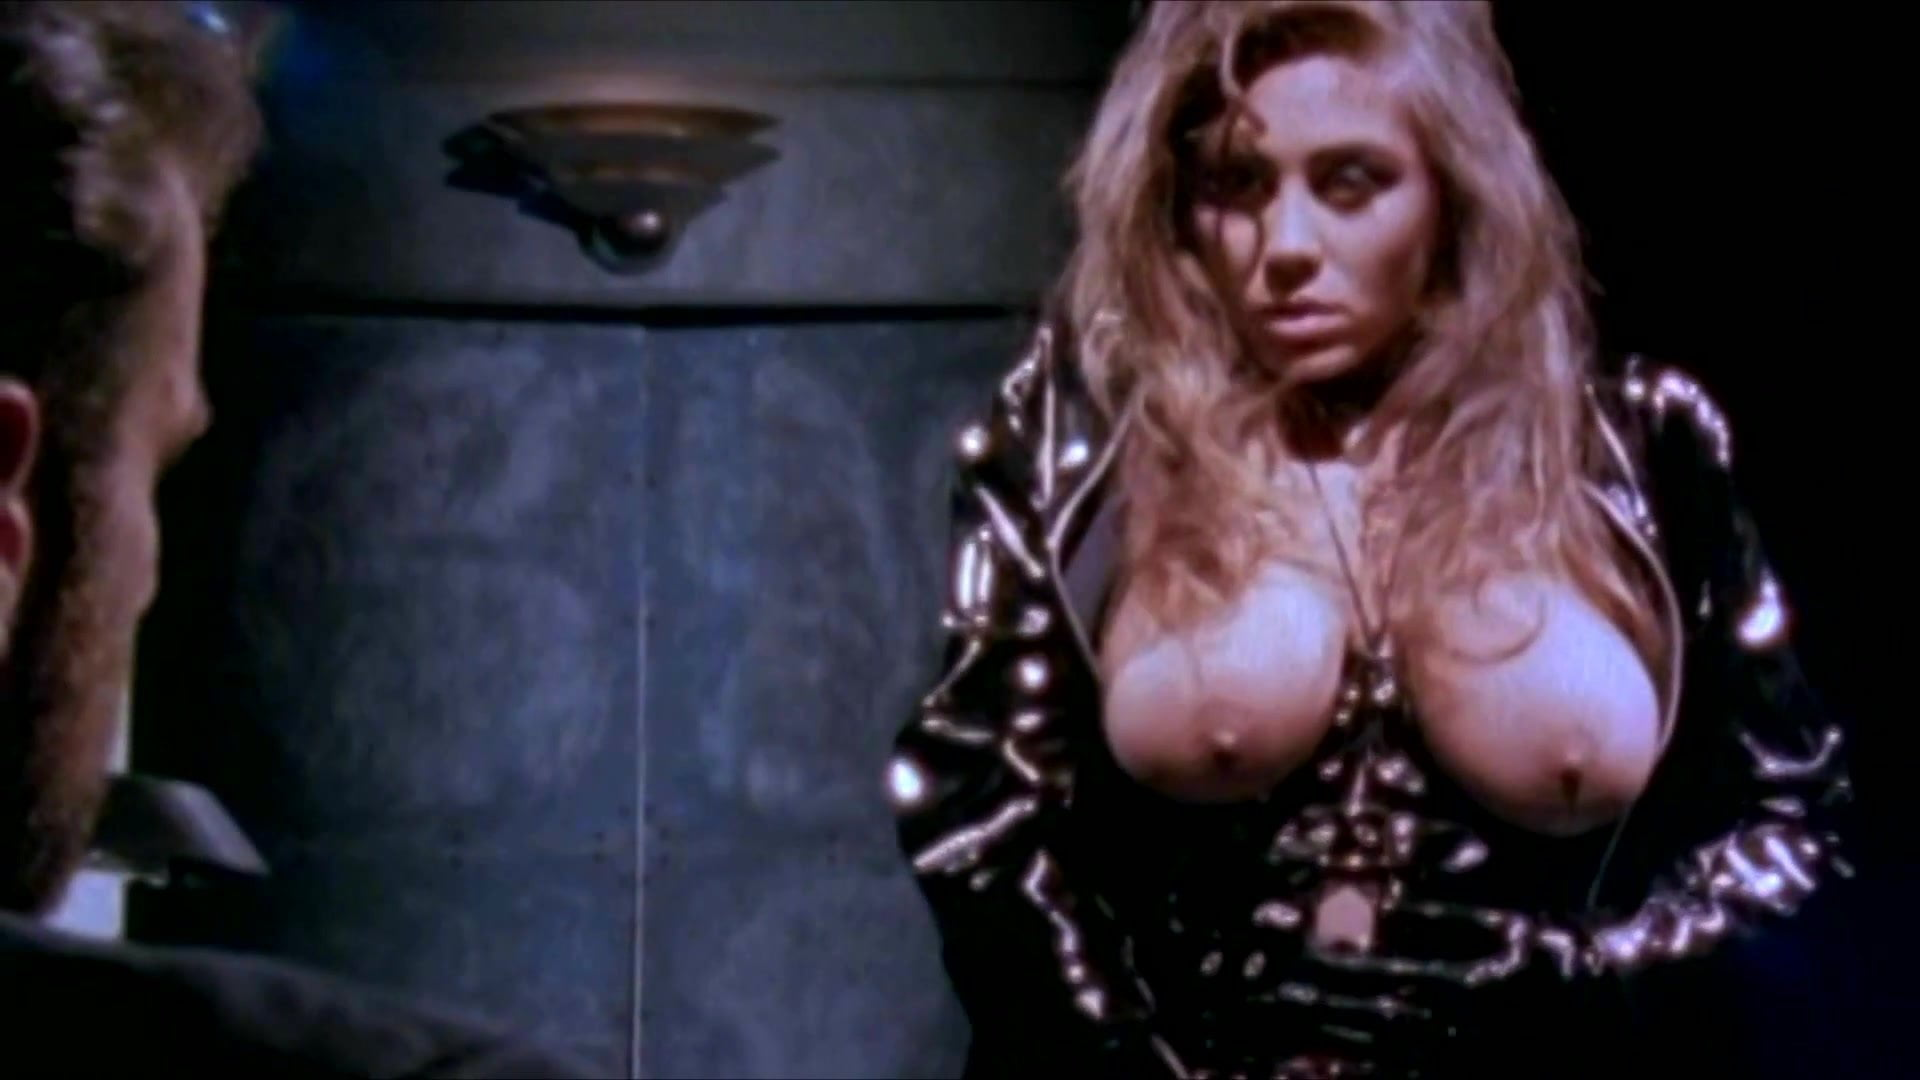 Chasey lain free videos-3349